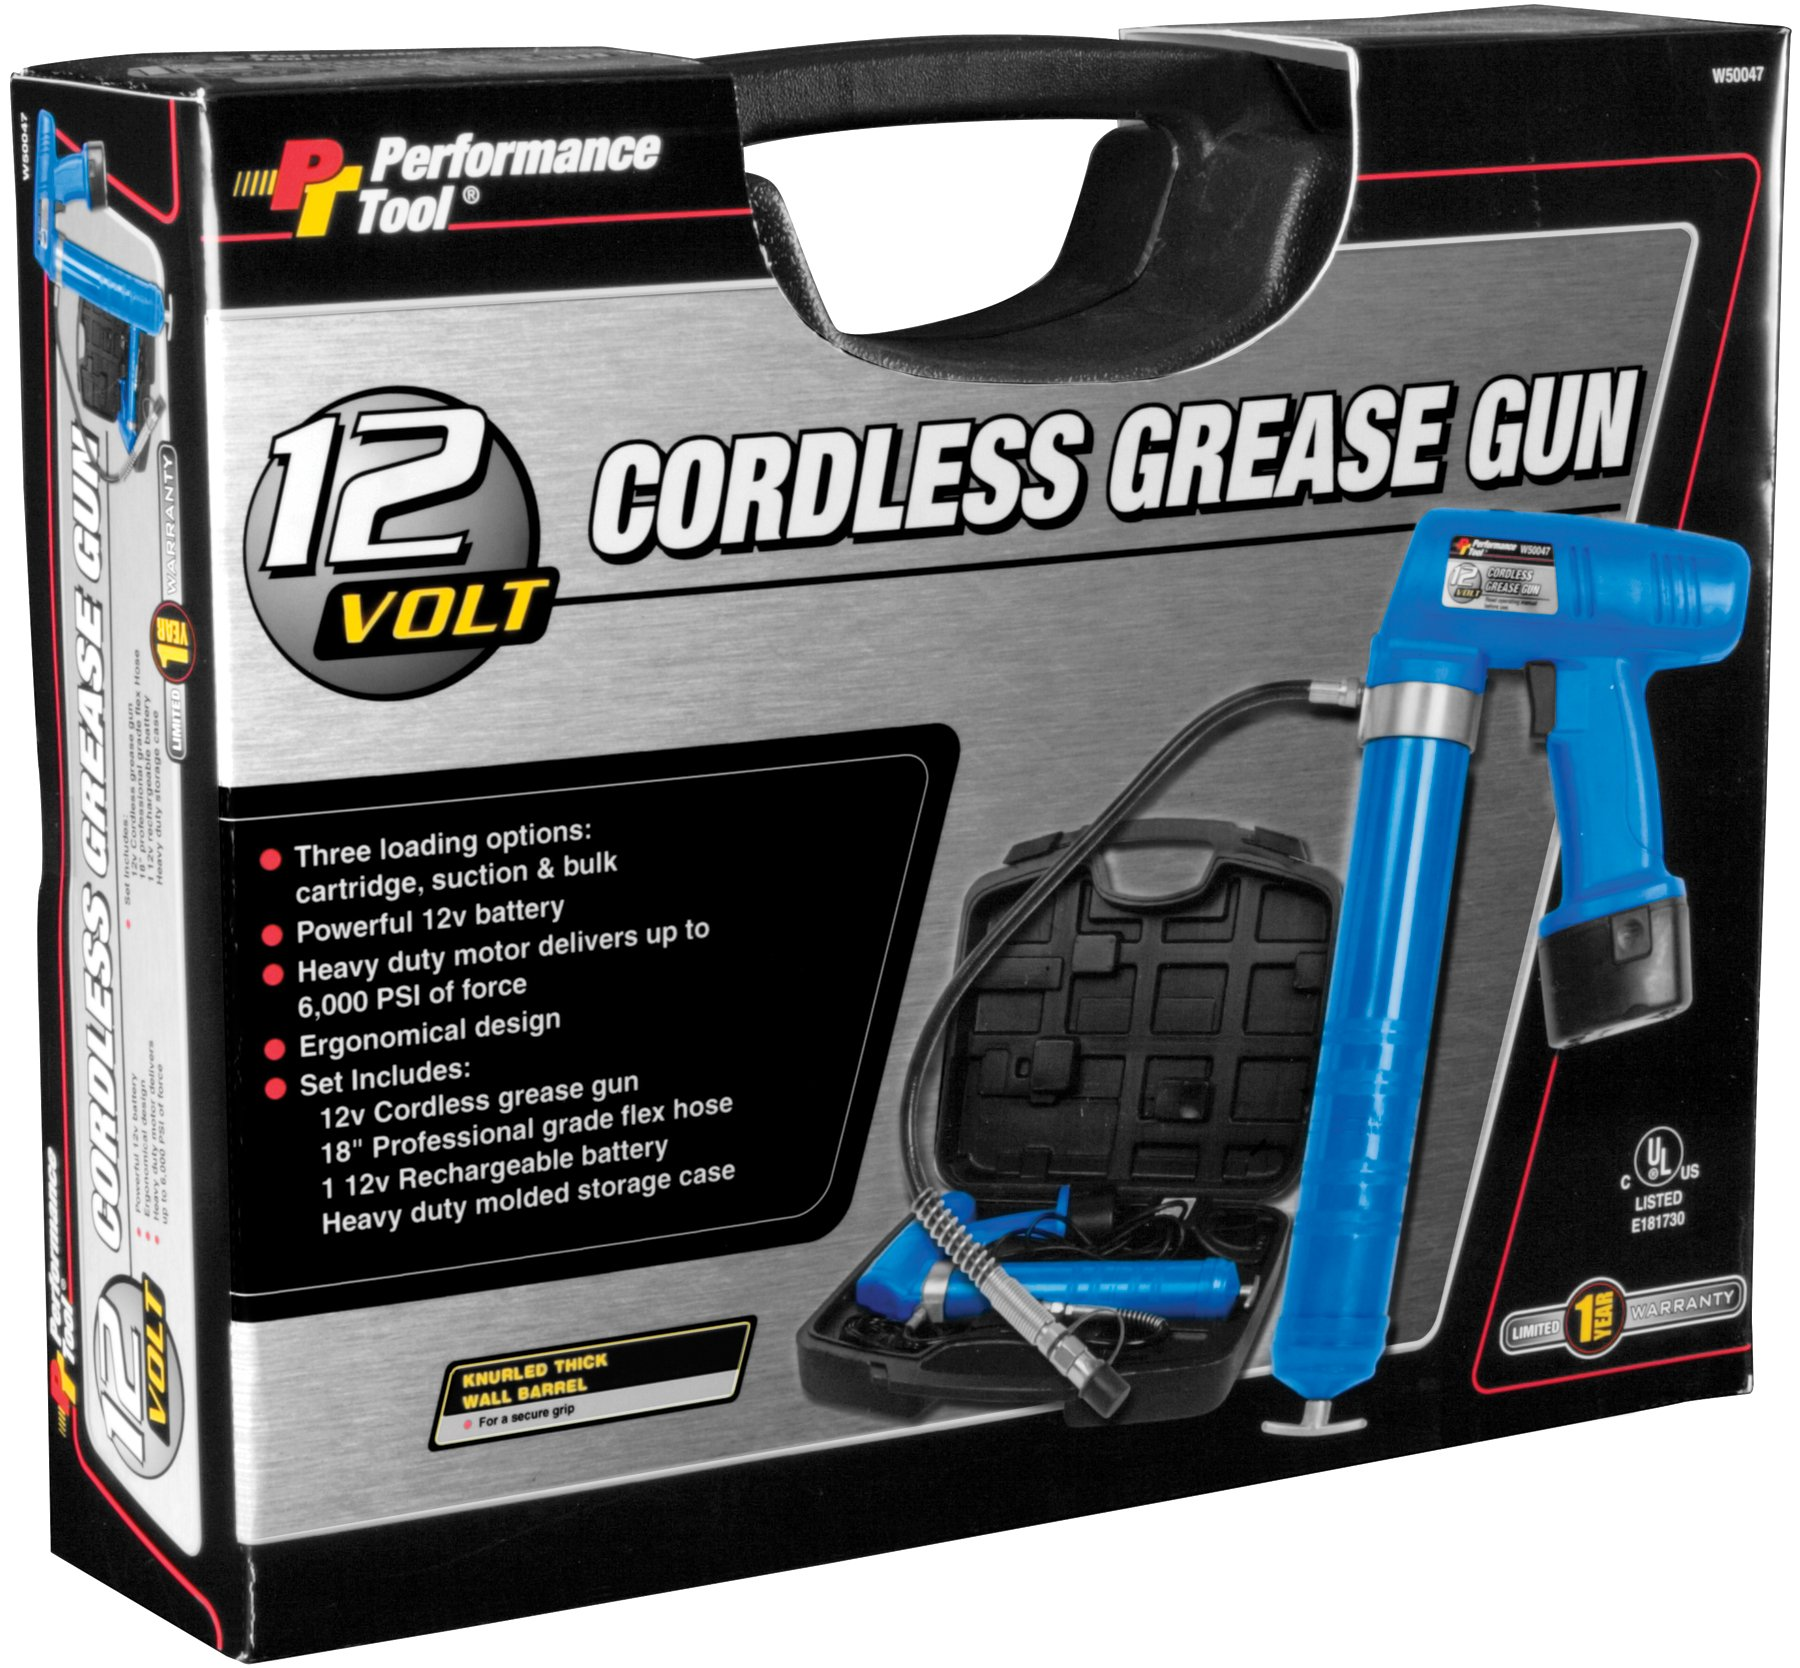 Performance Tool W50047 12V Grease Gun